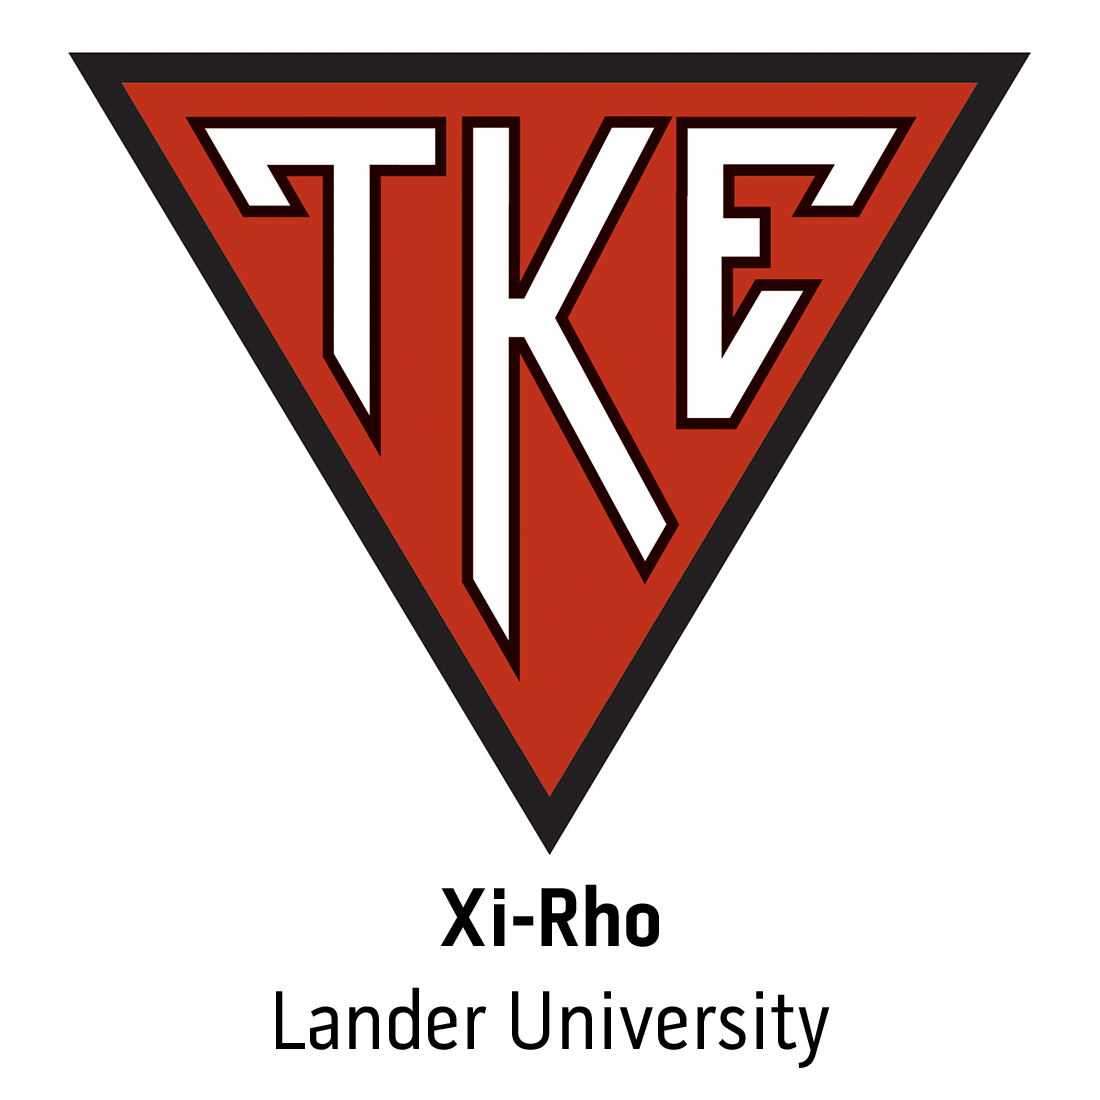 Xi-Rho Chapter at Lander University